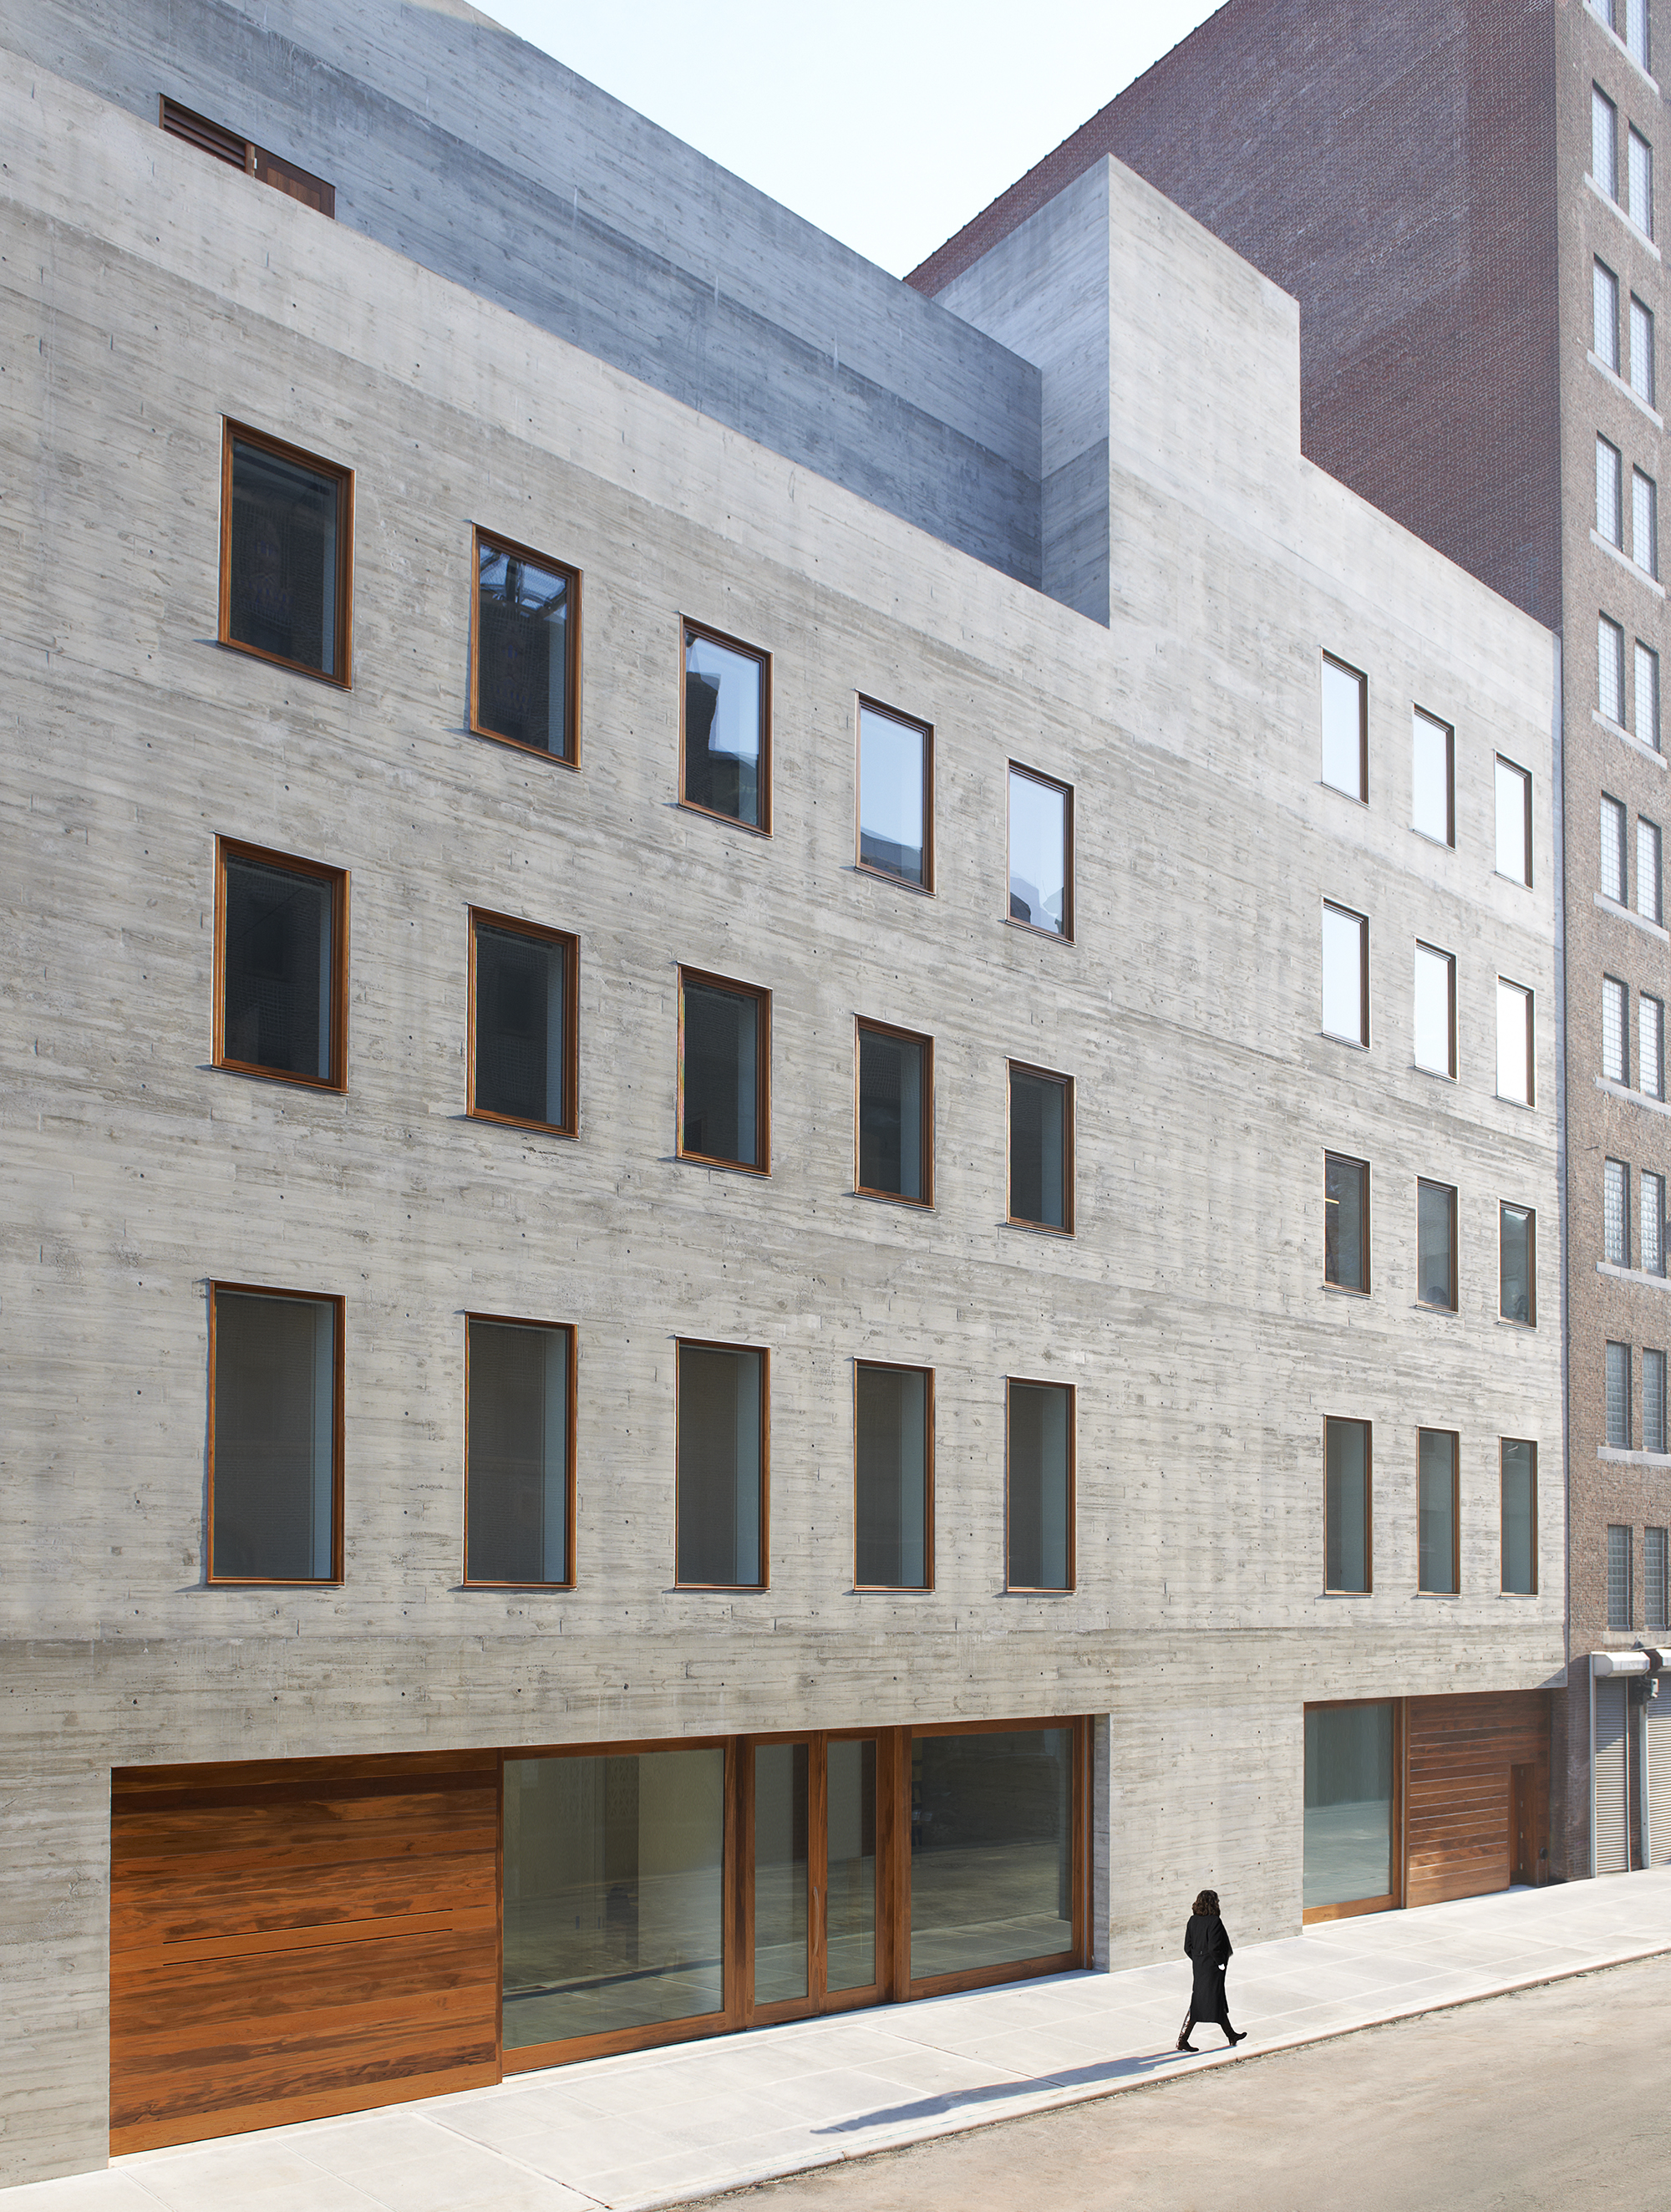 David Zwirner 20th Street, New York, NY, Selldorf Architects.